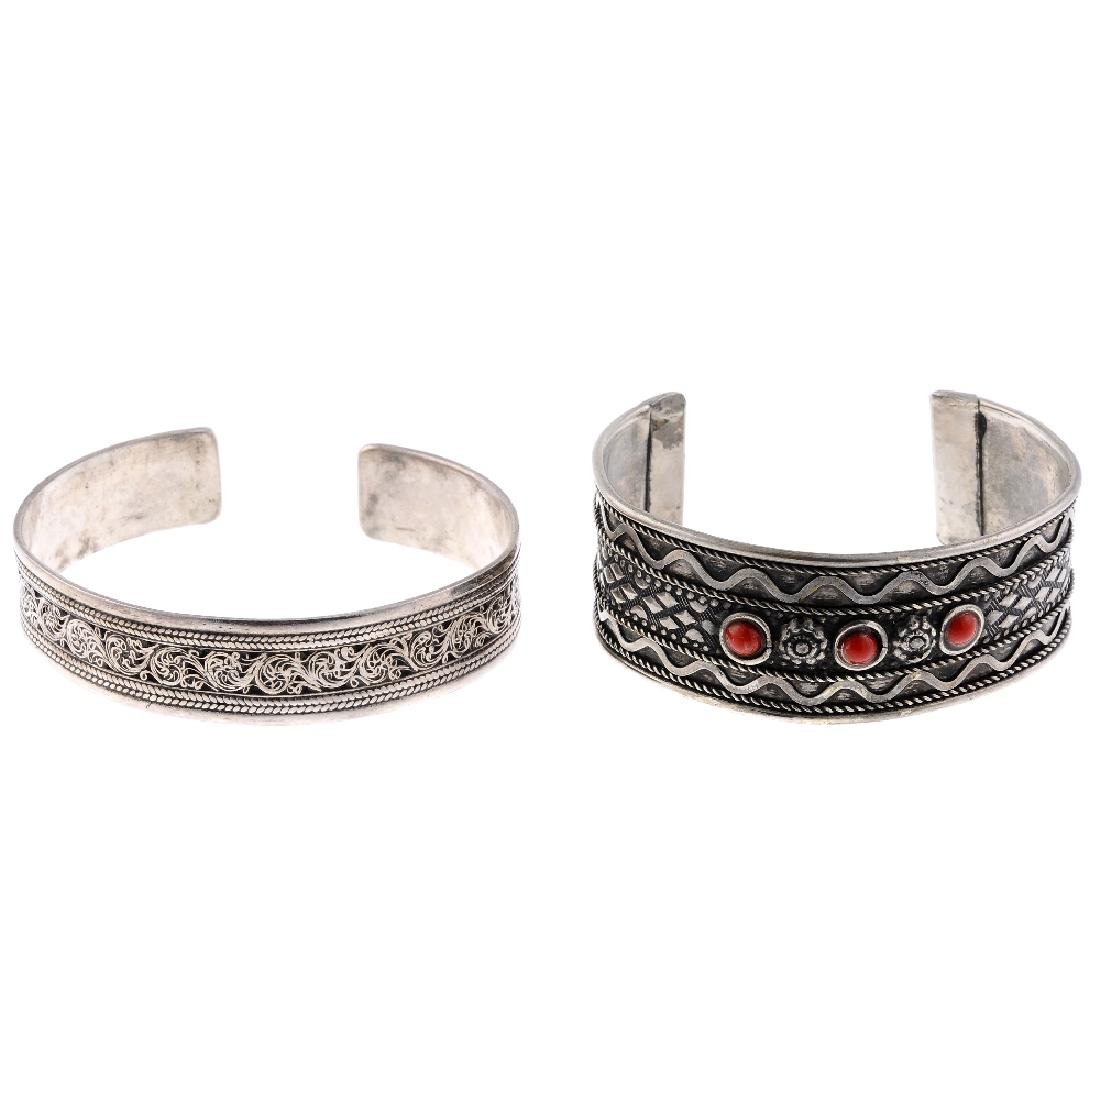 A selection of silver and white metal bangles. The